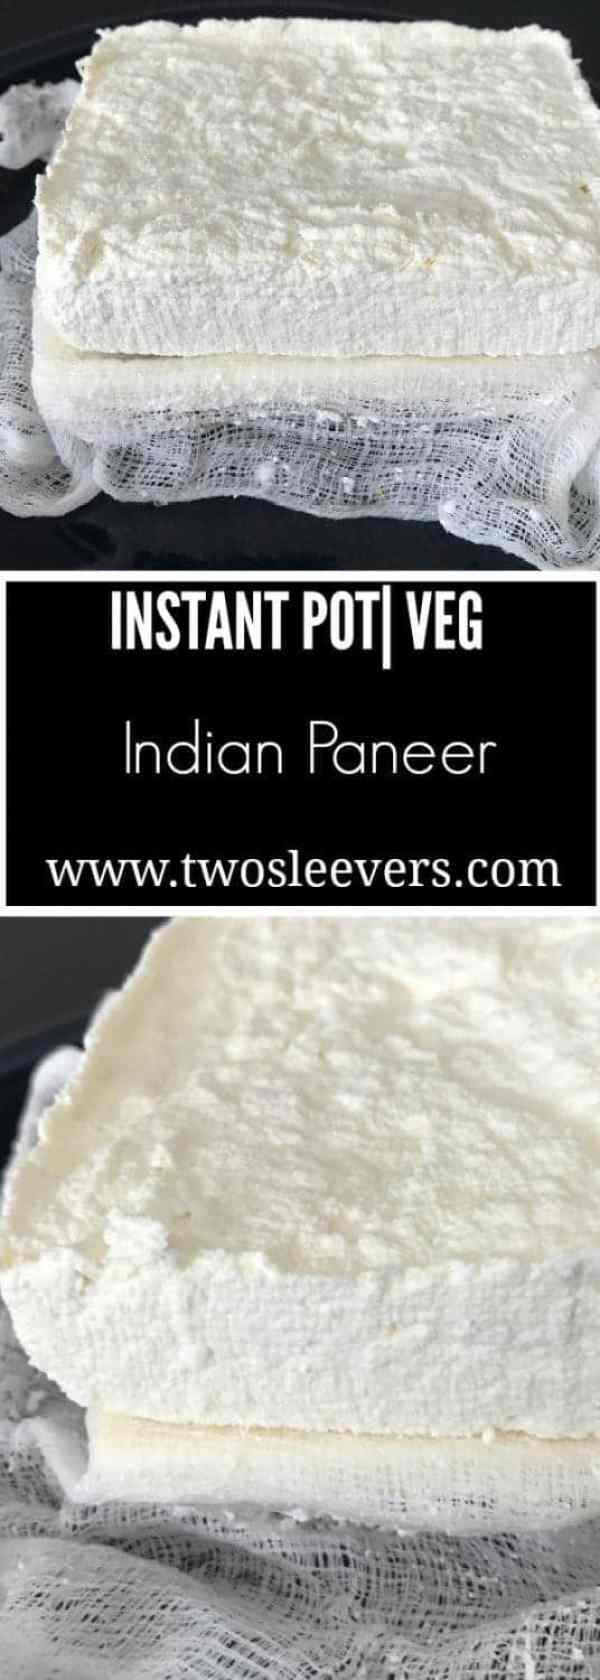 Paneer Pinterest - Instant Pot Paneer Indian Soft Cheese - https://twosleevers.com